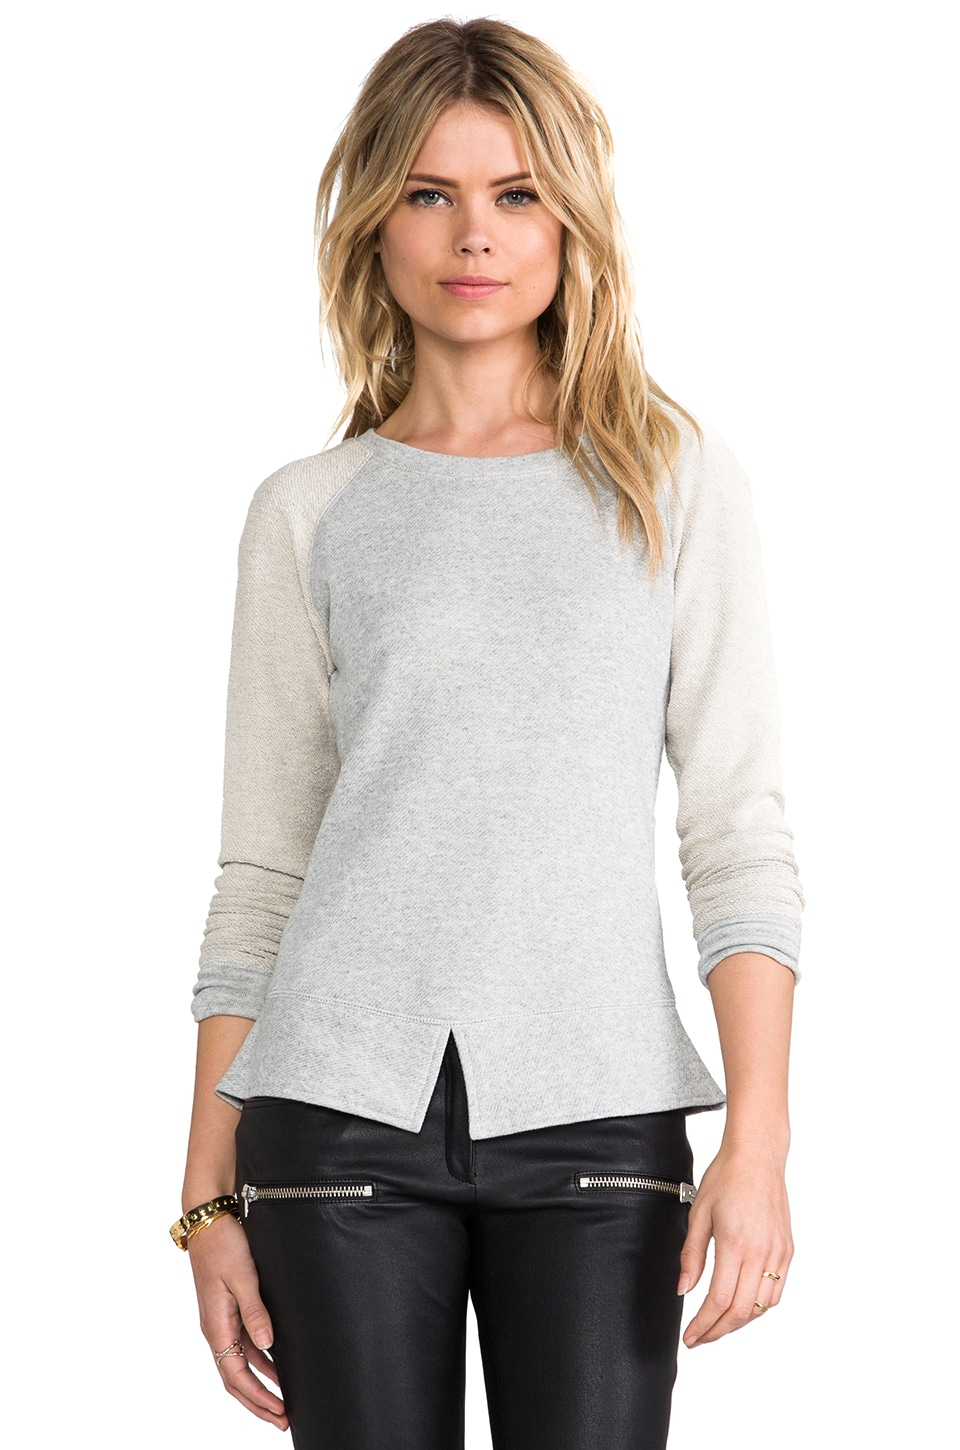 Pencey Standard Split Hem Sweatshirt in Heather Grey